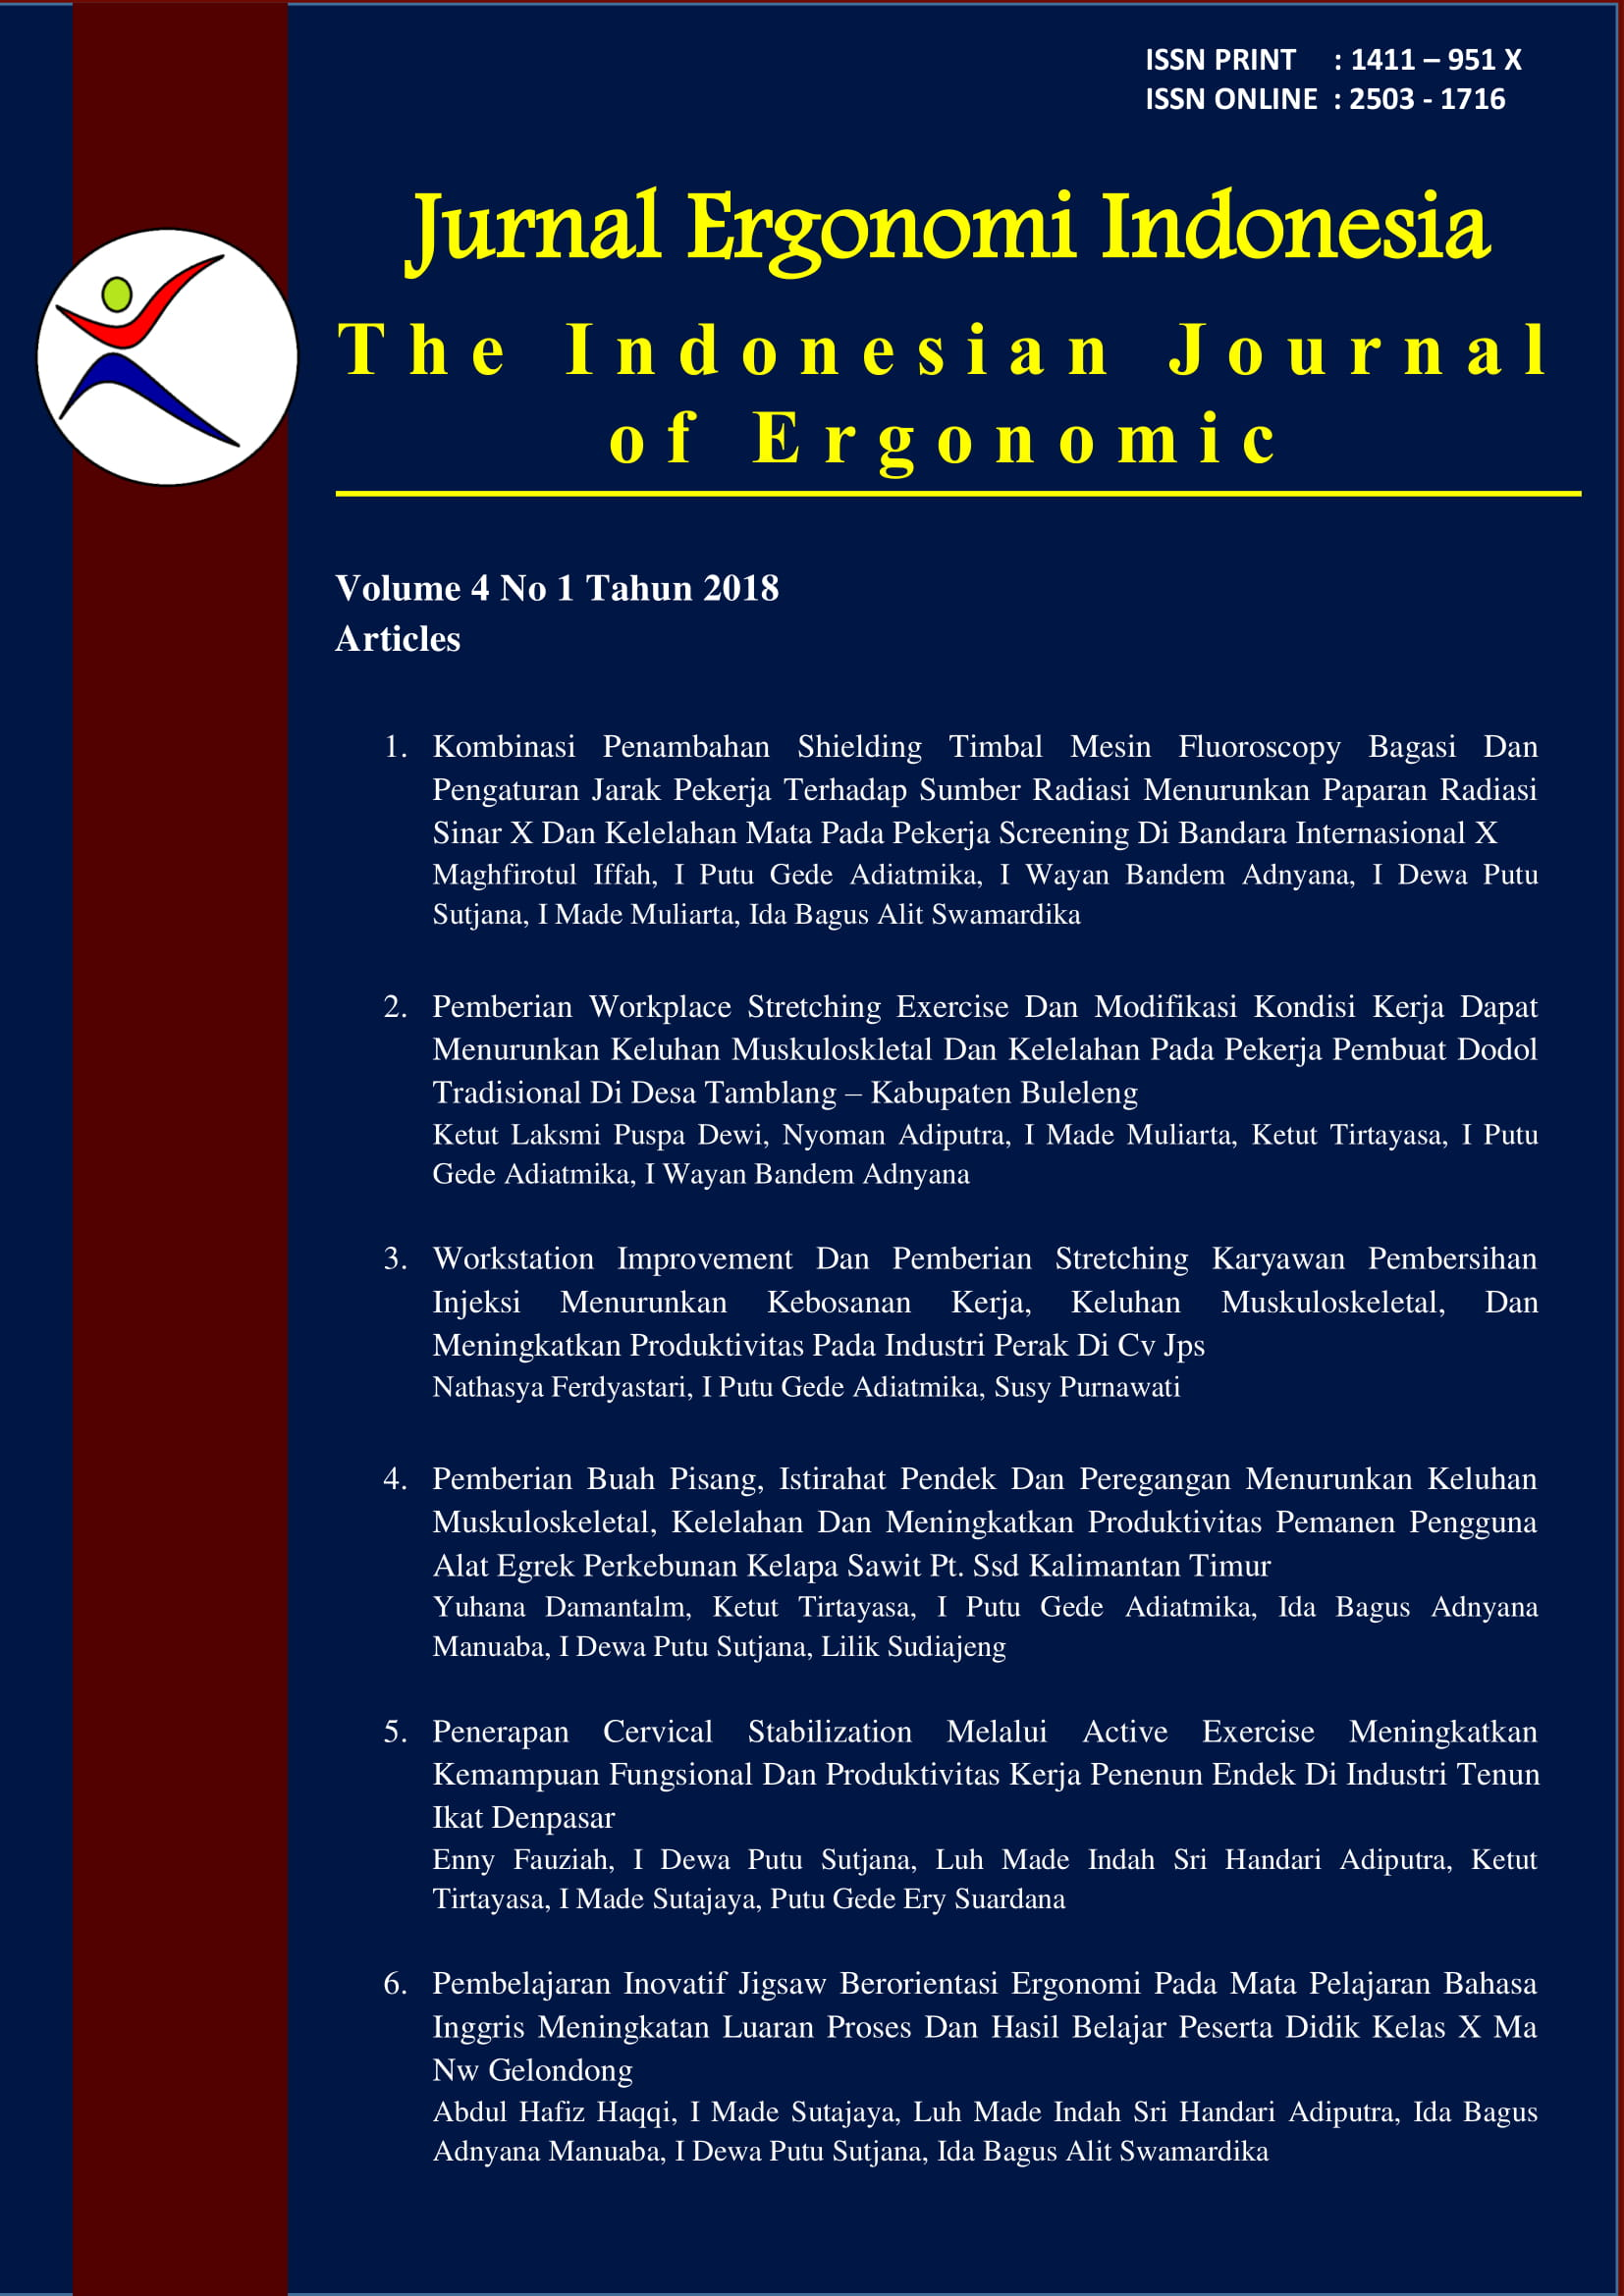 Archives Jurnal Ergonomi Indonesia The Indonesian Journal Of Ergonomic